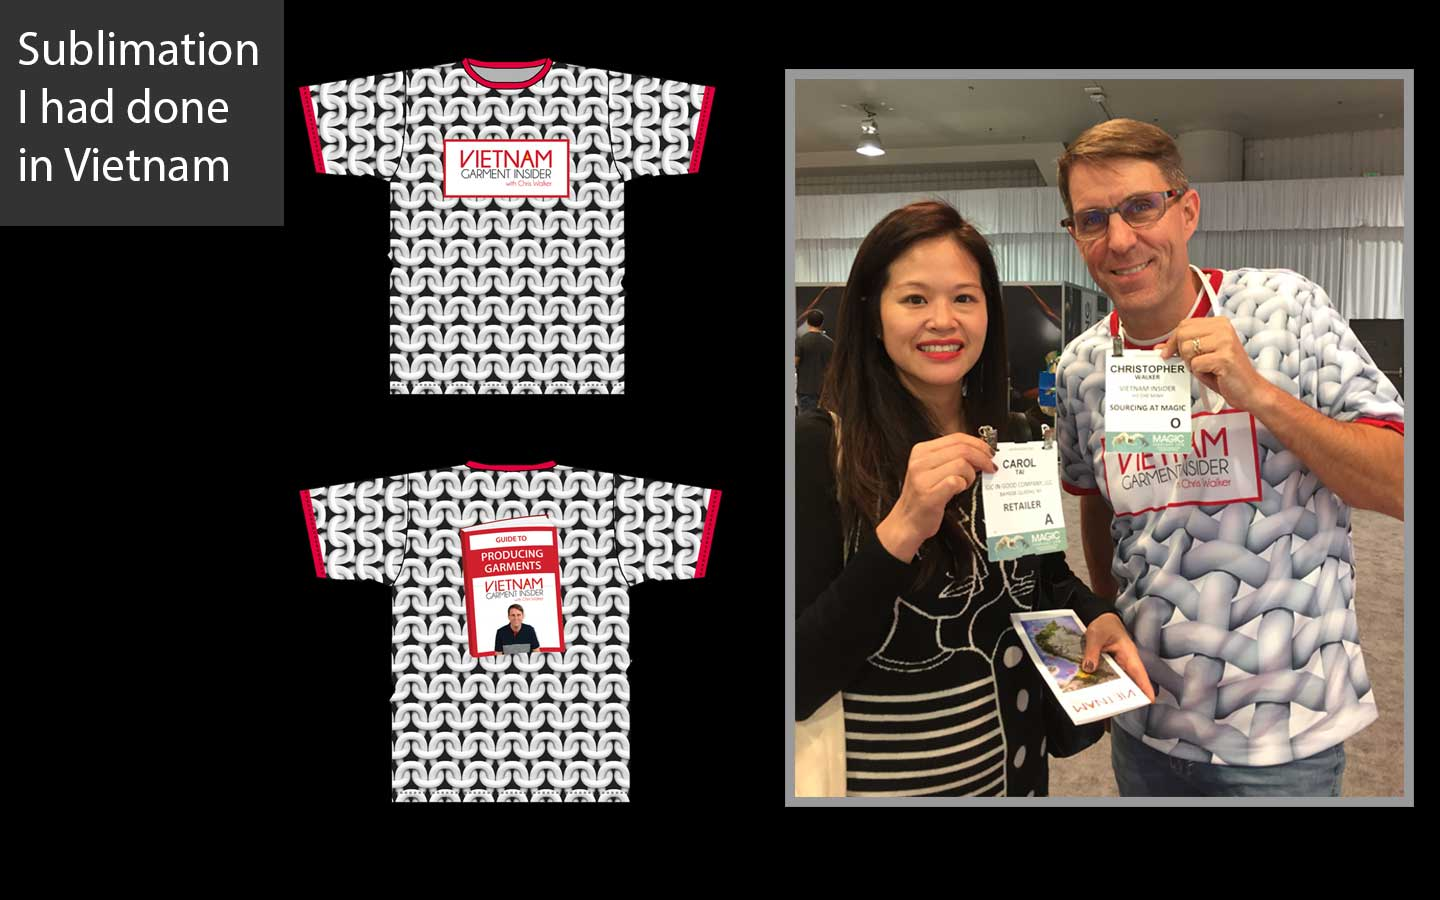 Chris knows sublimation printing in Vietnam